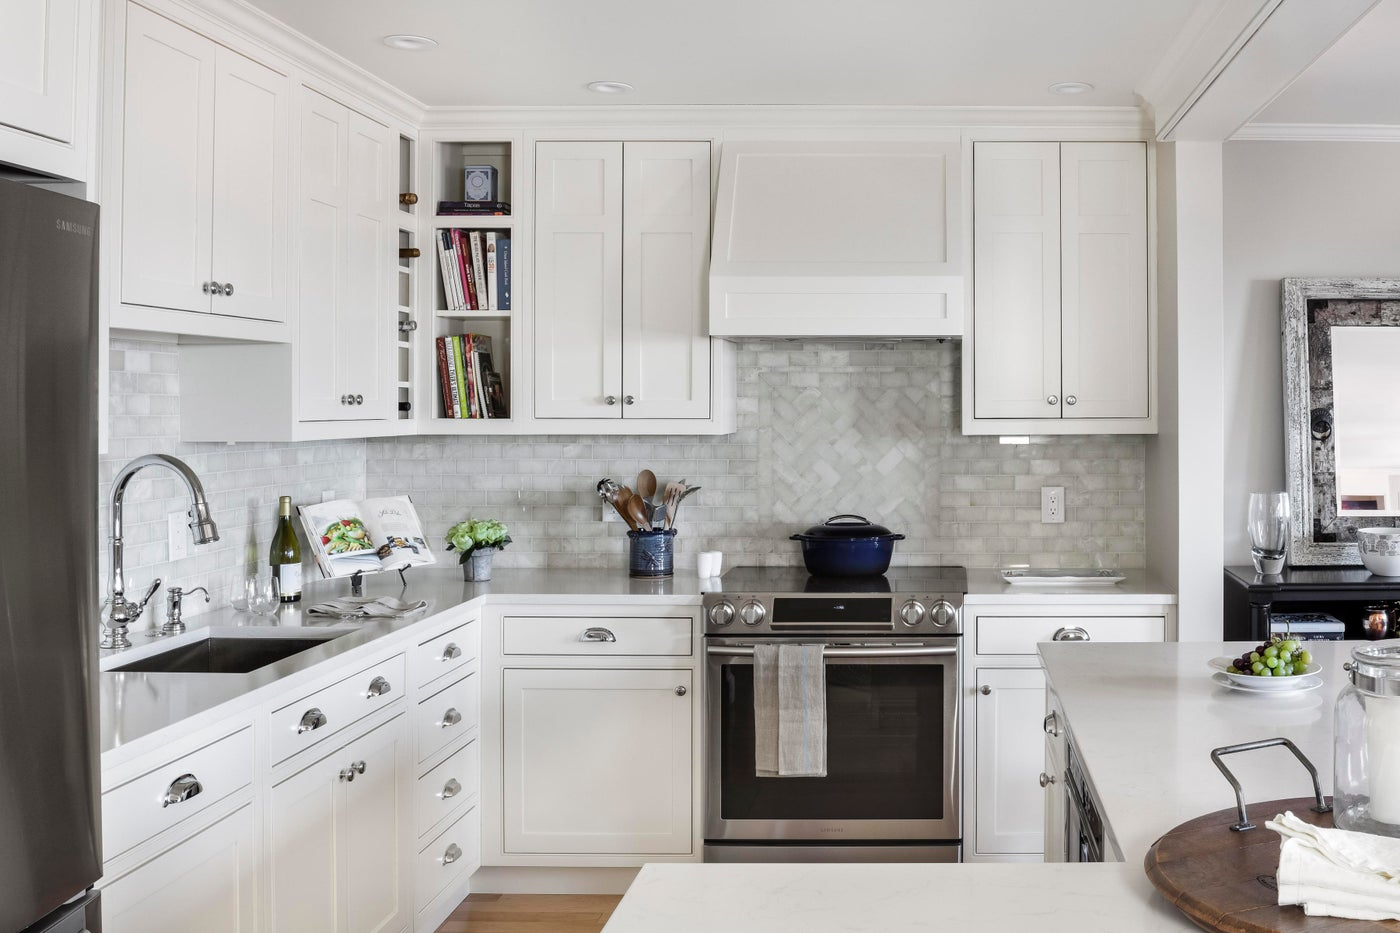 Stand-out custom kitchen cabinetry with onyx backsplash